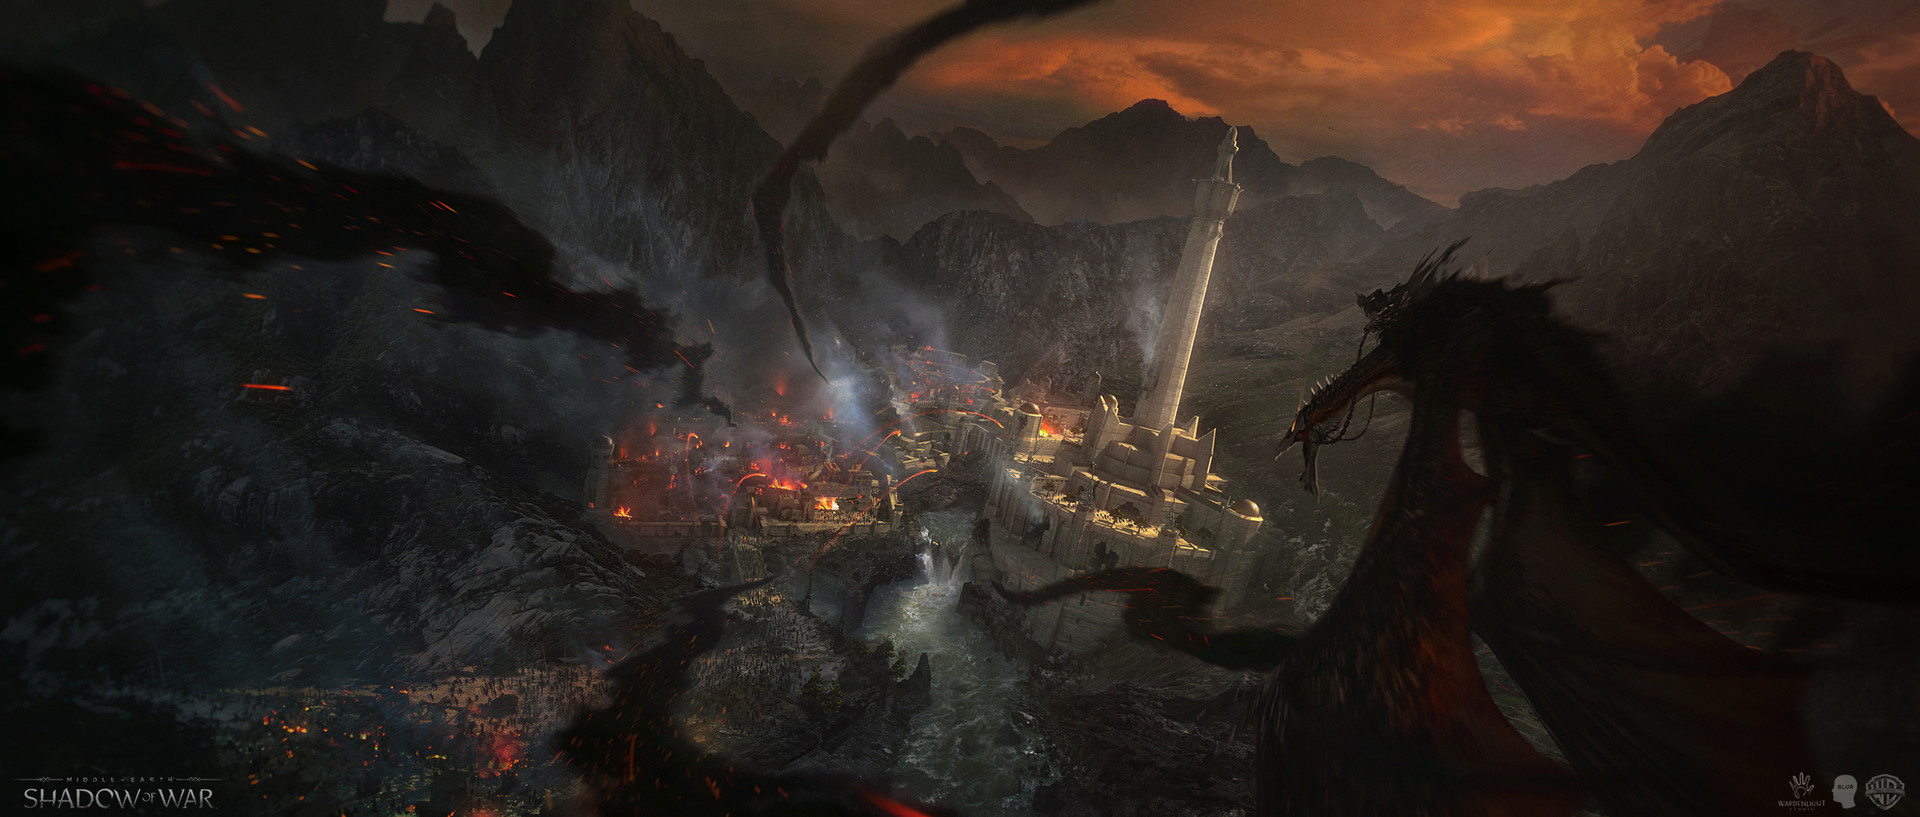 Shadow of mordor the lord of the rings 5